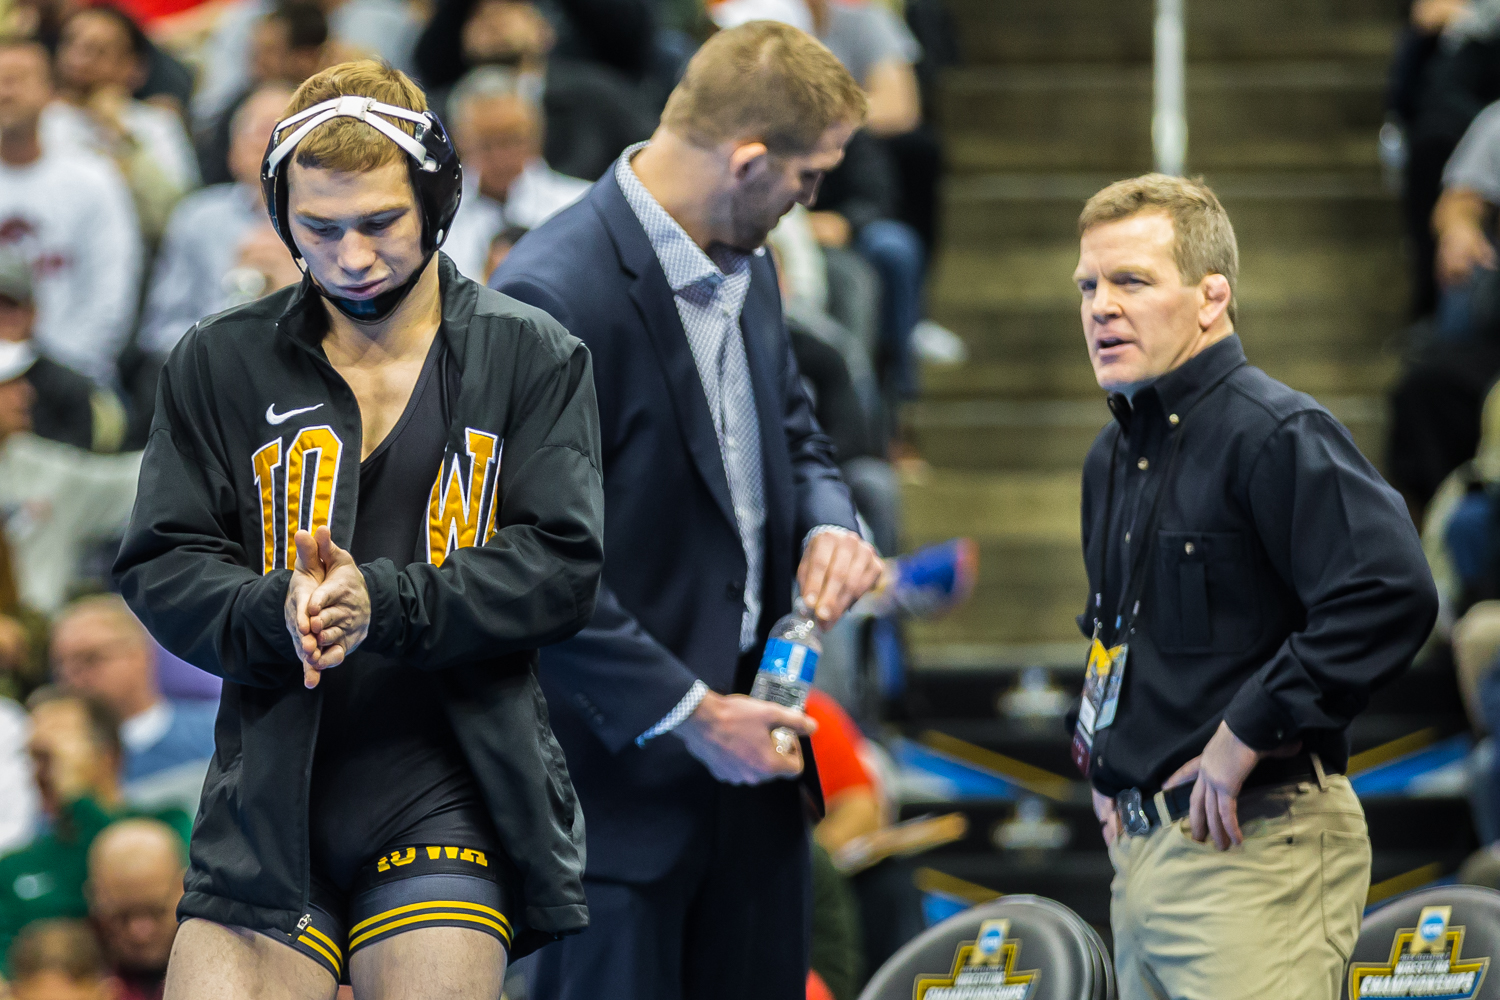 Iowa%E2%80%99s+125-pound+Spencer+Lee+prepares+to+wrestle+Virginia%E2%80%99s+Jack+Mueller+during+the+final+session+of+the+2019+NCAA+D1+Wrestling+Championships+at+PPG+Paints+Arena+in+Pittsburgh%2C+PA+on+Saturday%2C+March+23%2C+2019.+Lee+won+by+decision%2C+5-0%2C+and+defended+his+national+title.